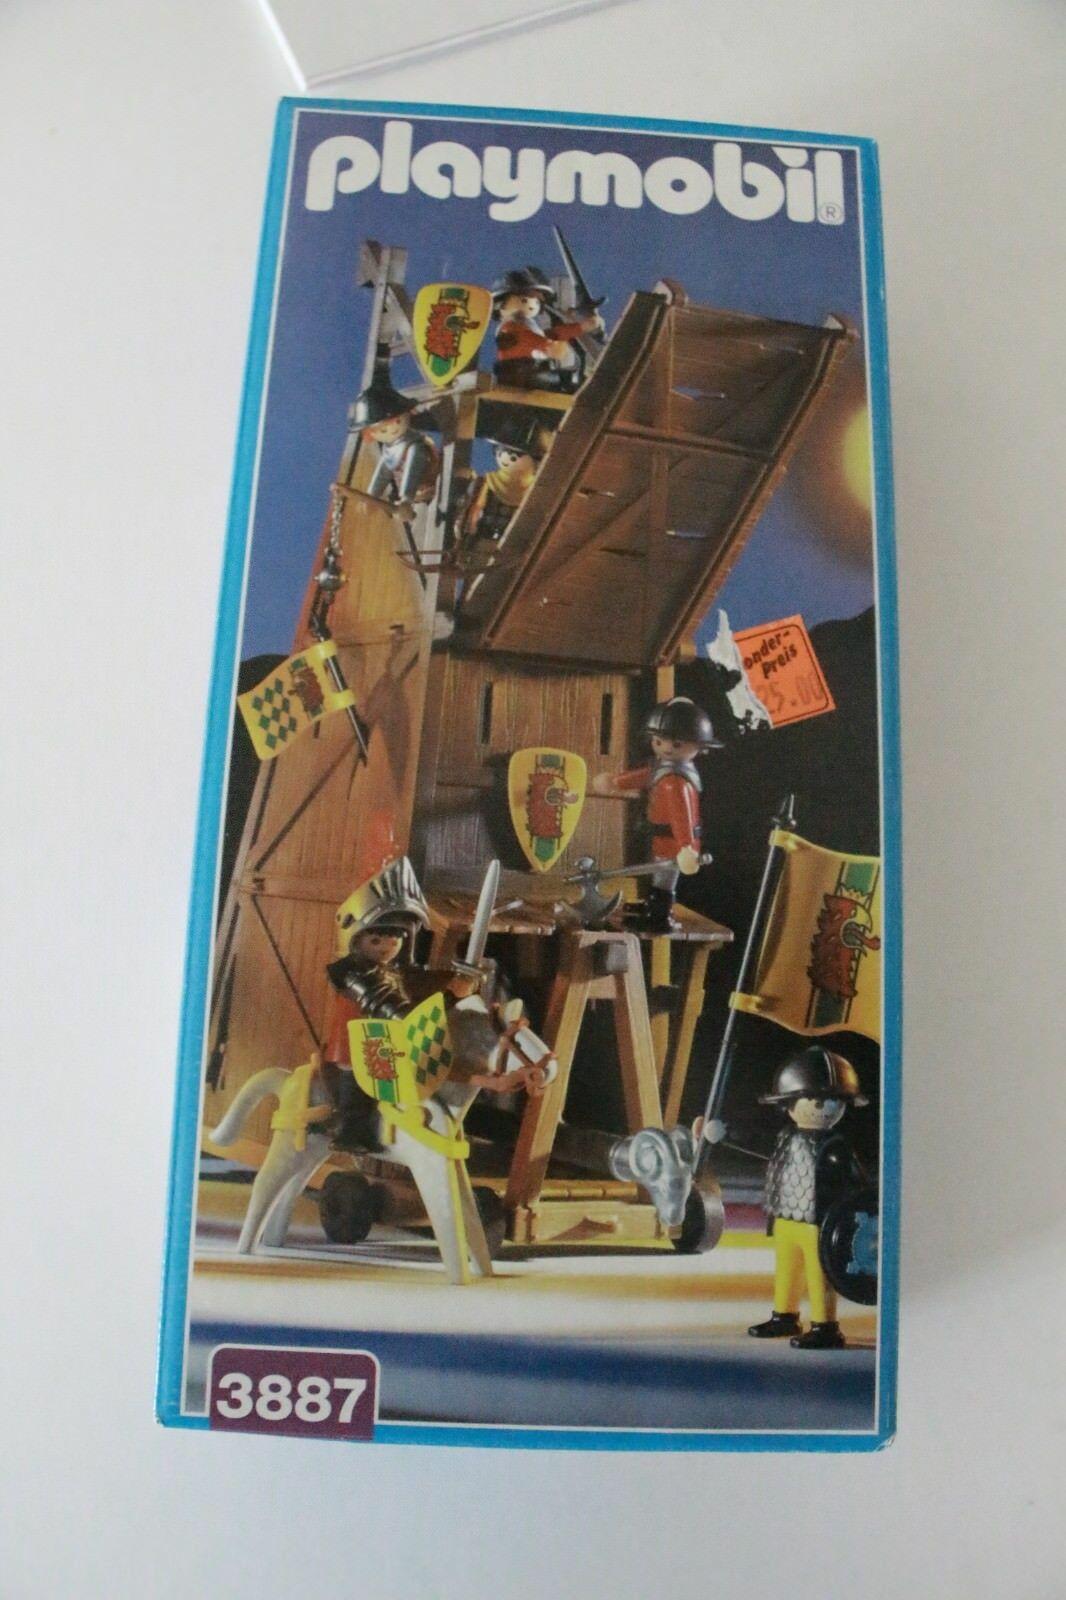 Playmobil 3887 SIEGE TOWER Comme neuf IN BOX  OVP  Comme neuf IN BOX  SPECIAL